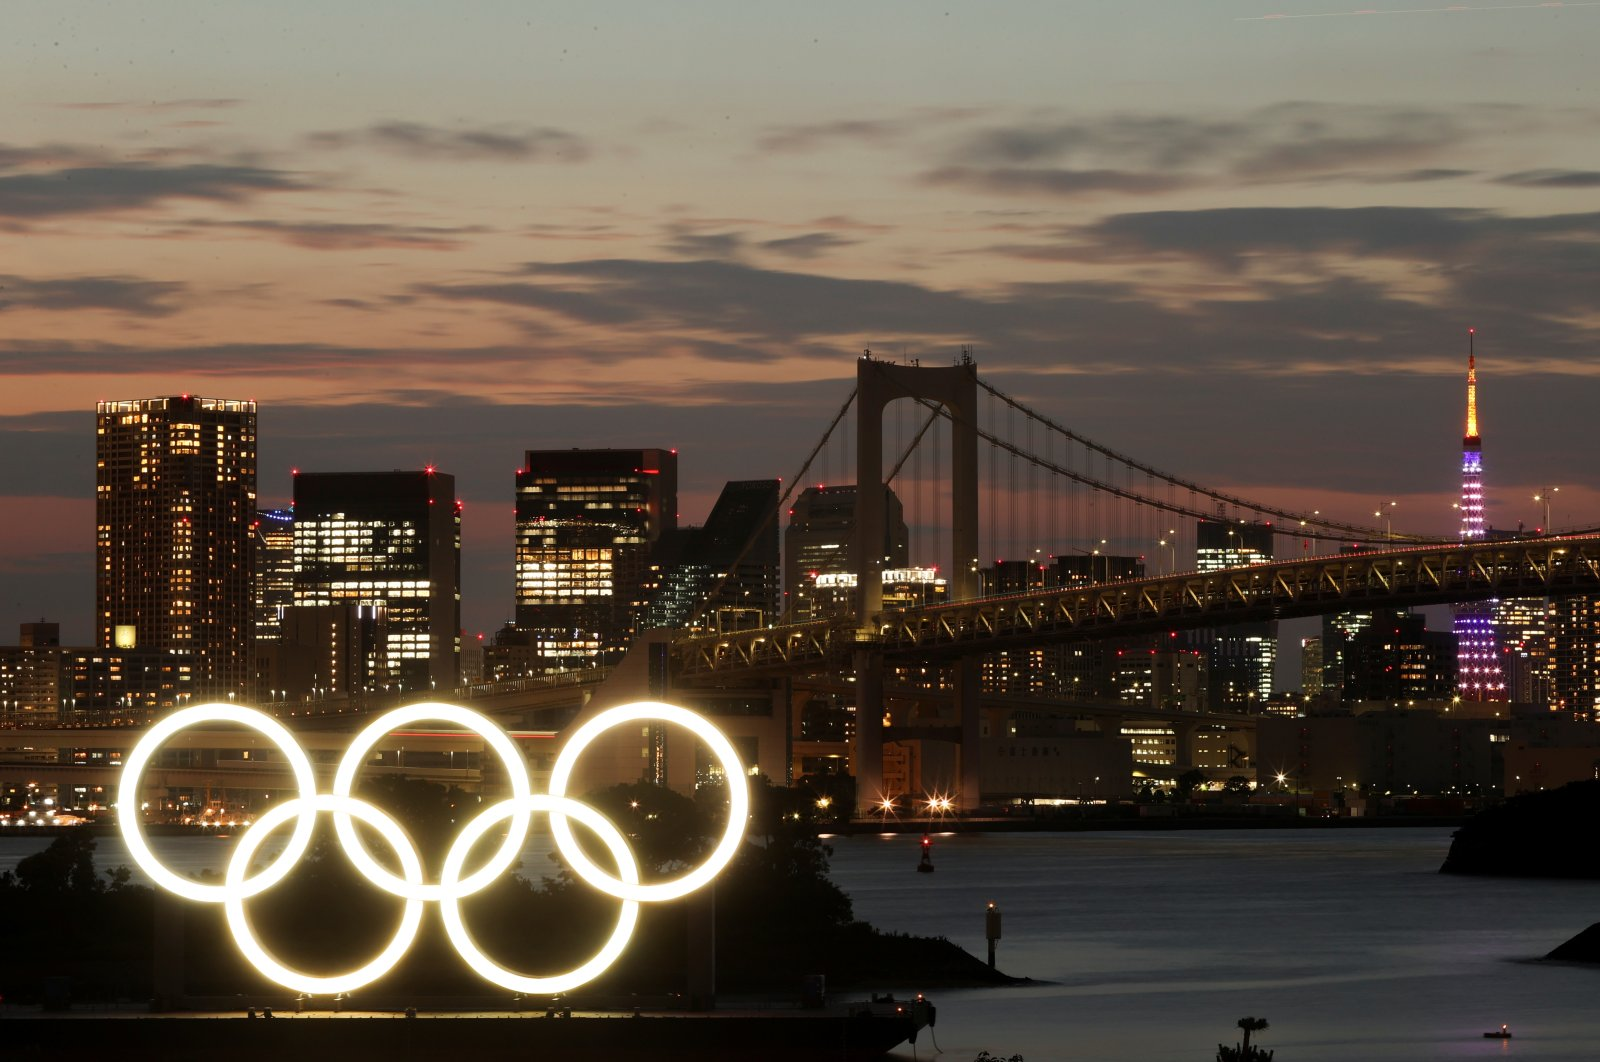 A long-exposure photo of the Olympic Rings on a floating platform with the Rainbow Bridge in the background ahead of the Tokyo 2020 Olympic Games, Tokyo, Japan June 21, 2021. (Reuters Photo)